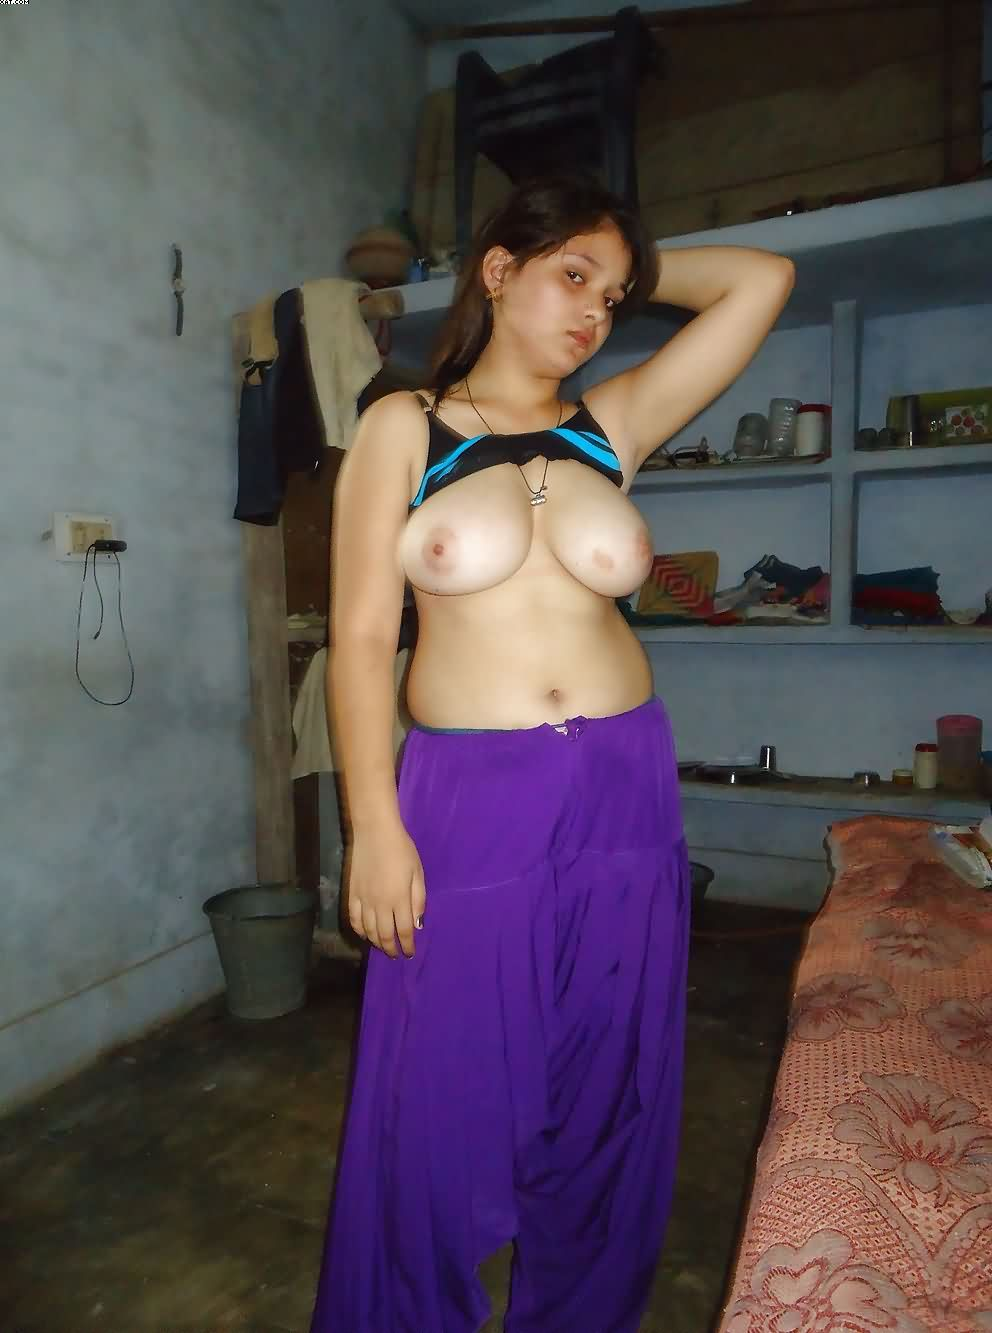 Beautiful Indian College Girl Stripping Showing